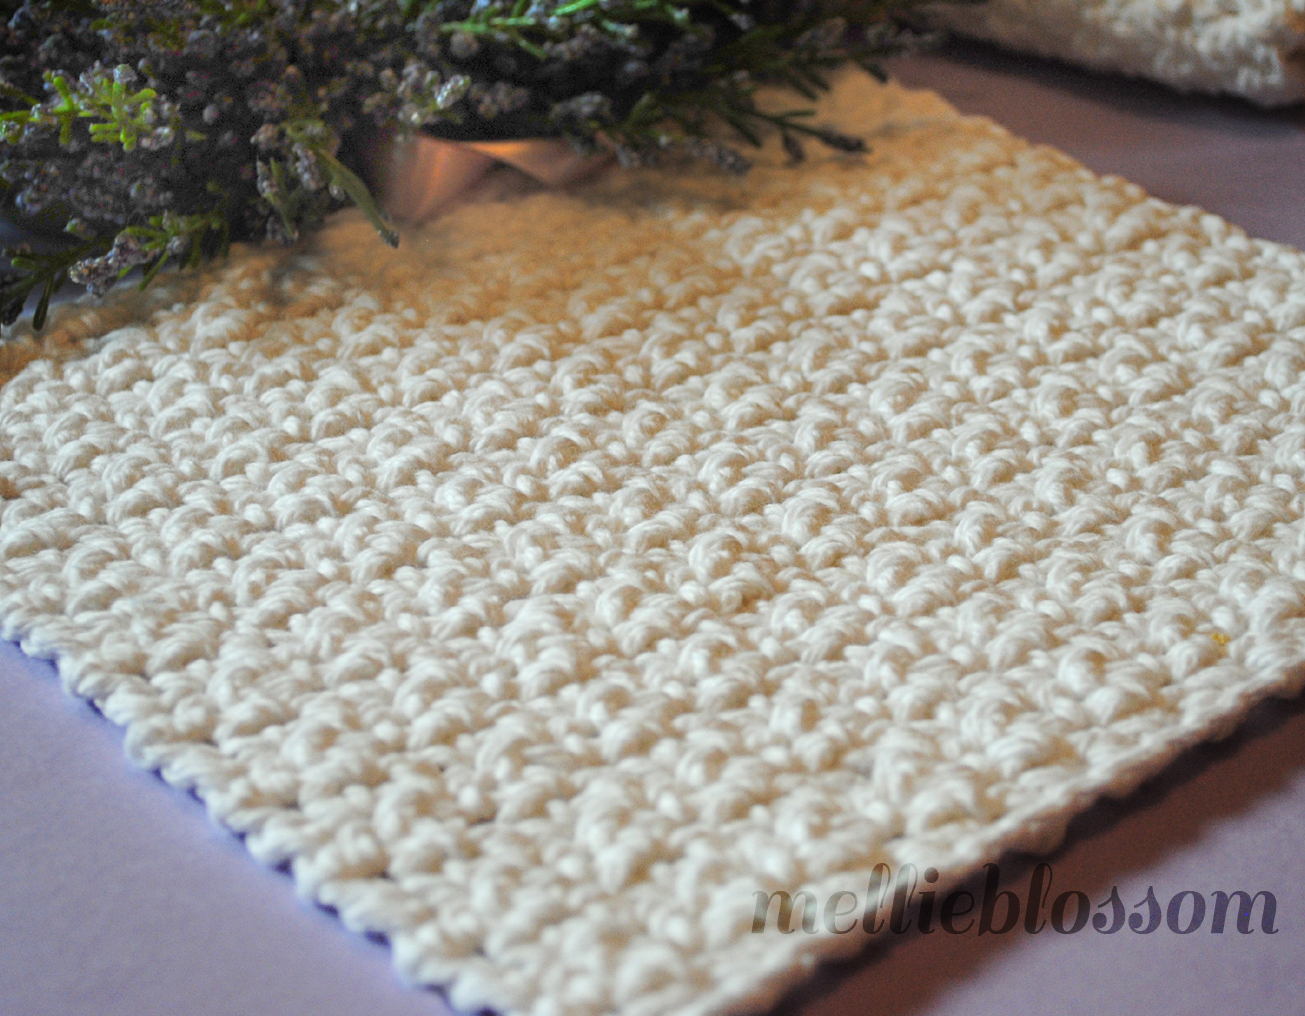 Crocheting Dishcloths For Beginners : Easy Crochet Patterns Pictures to pin on Pinterest